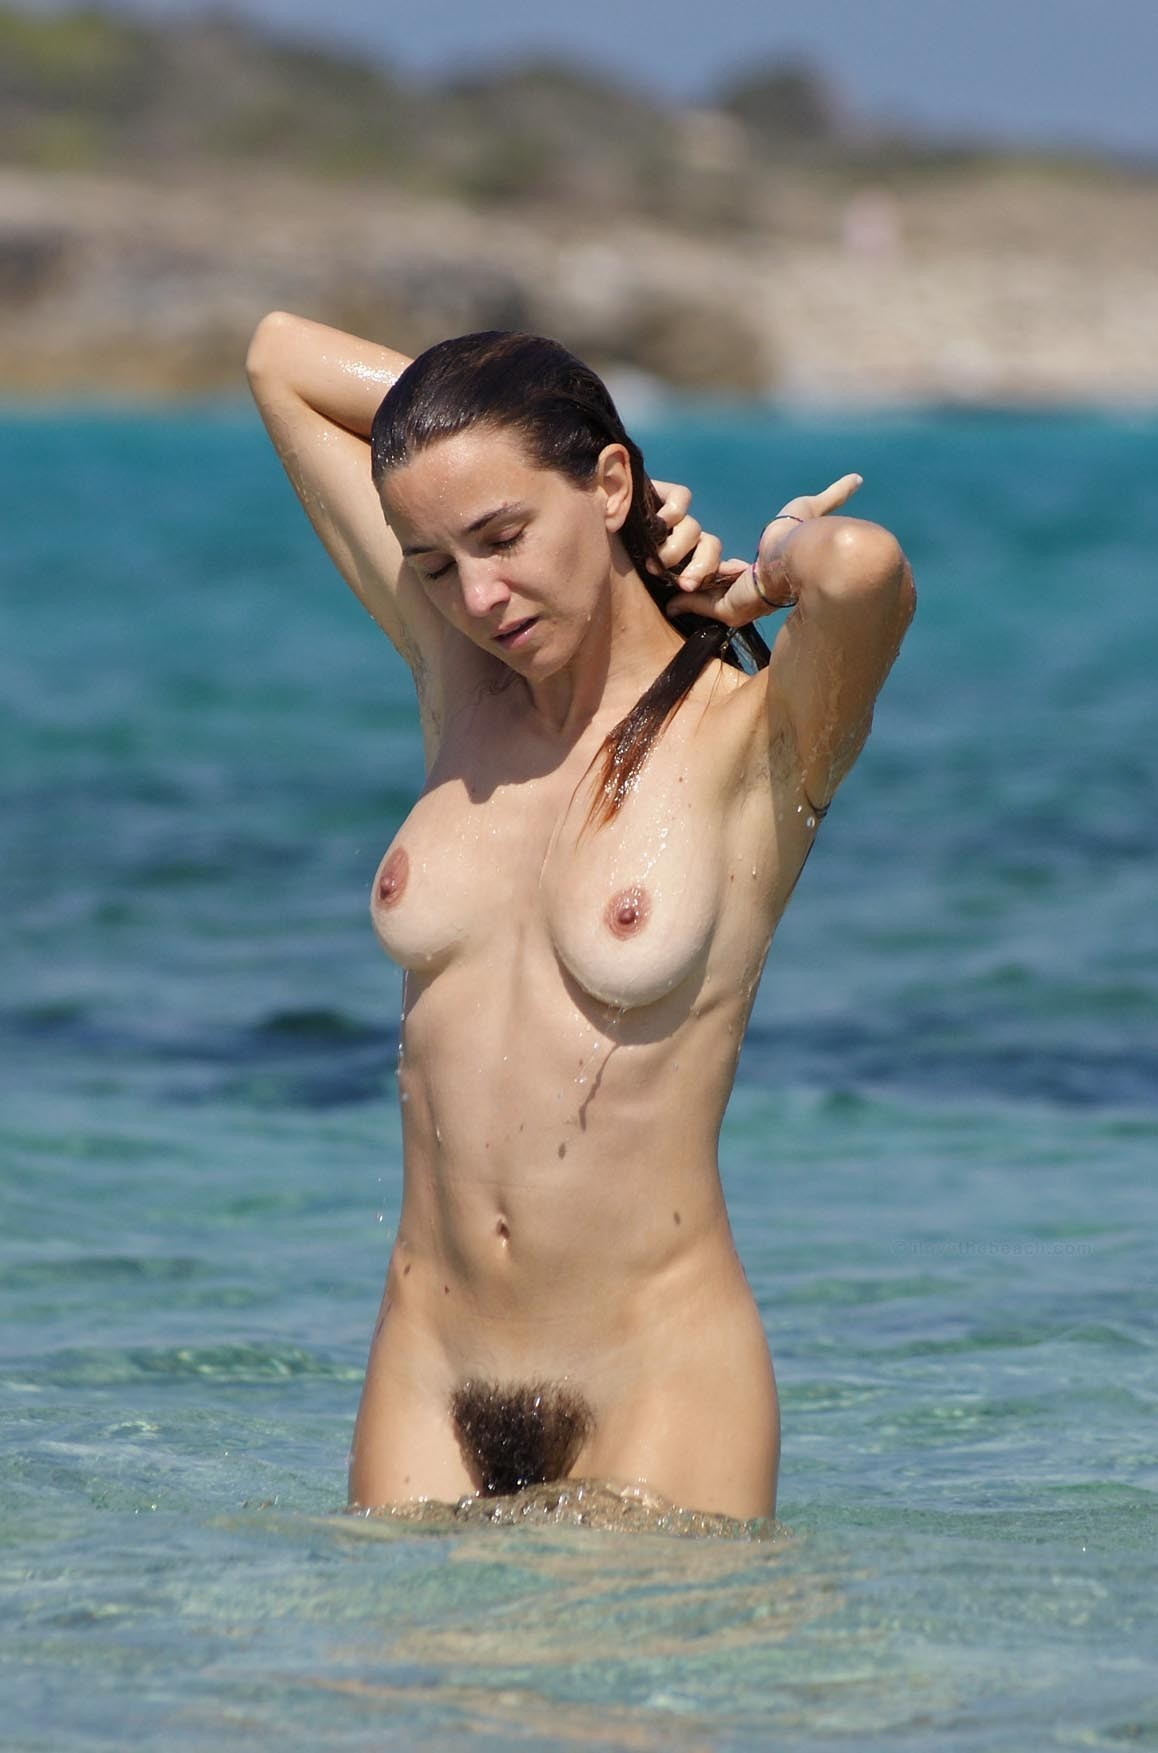 nudists-girls-boobs-beach-topless-mix-vol7-03